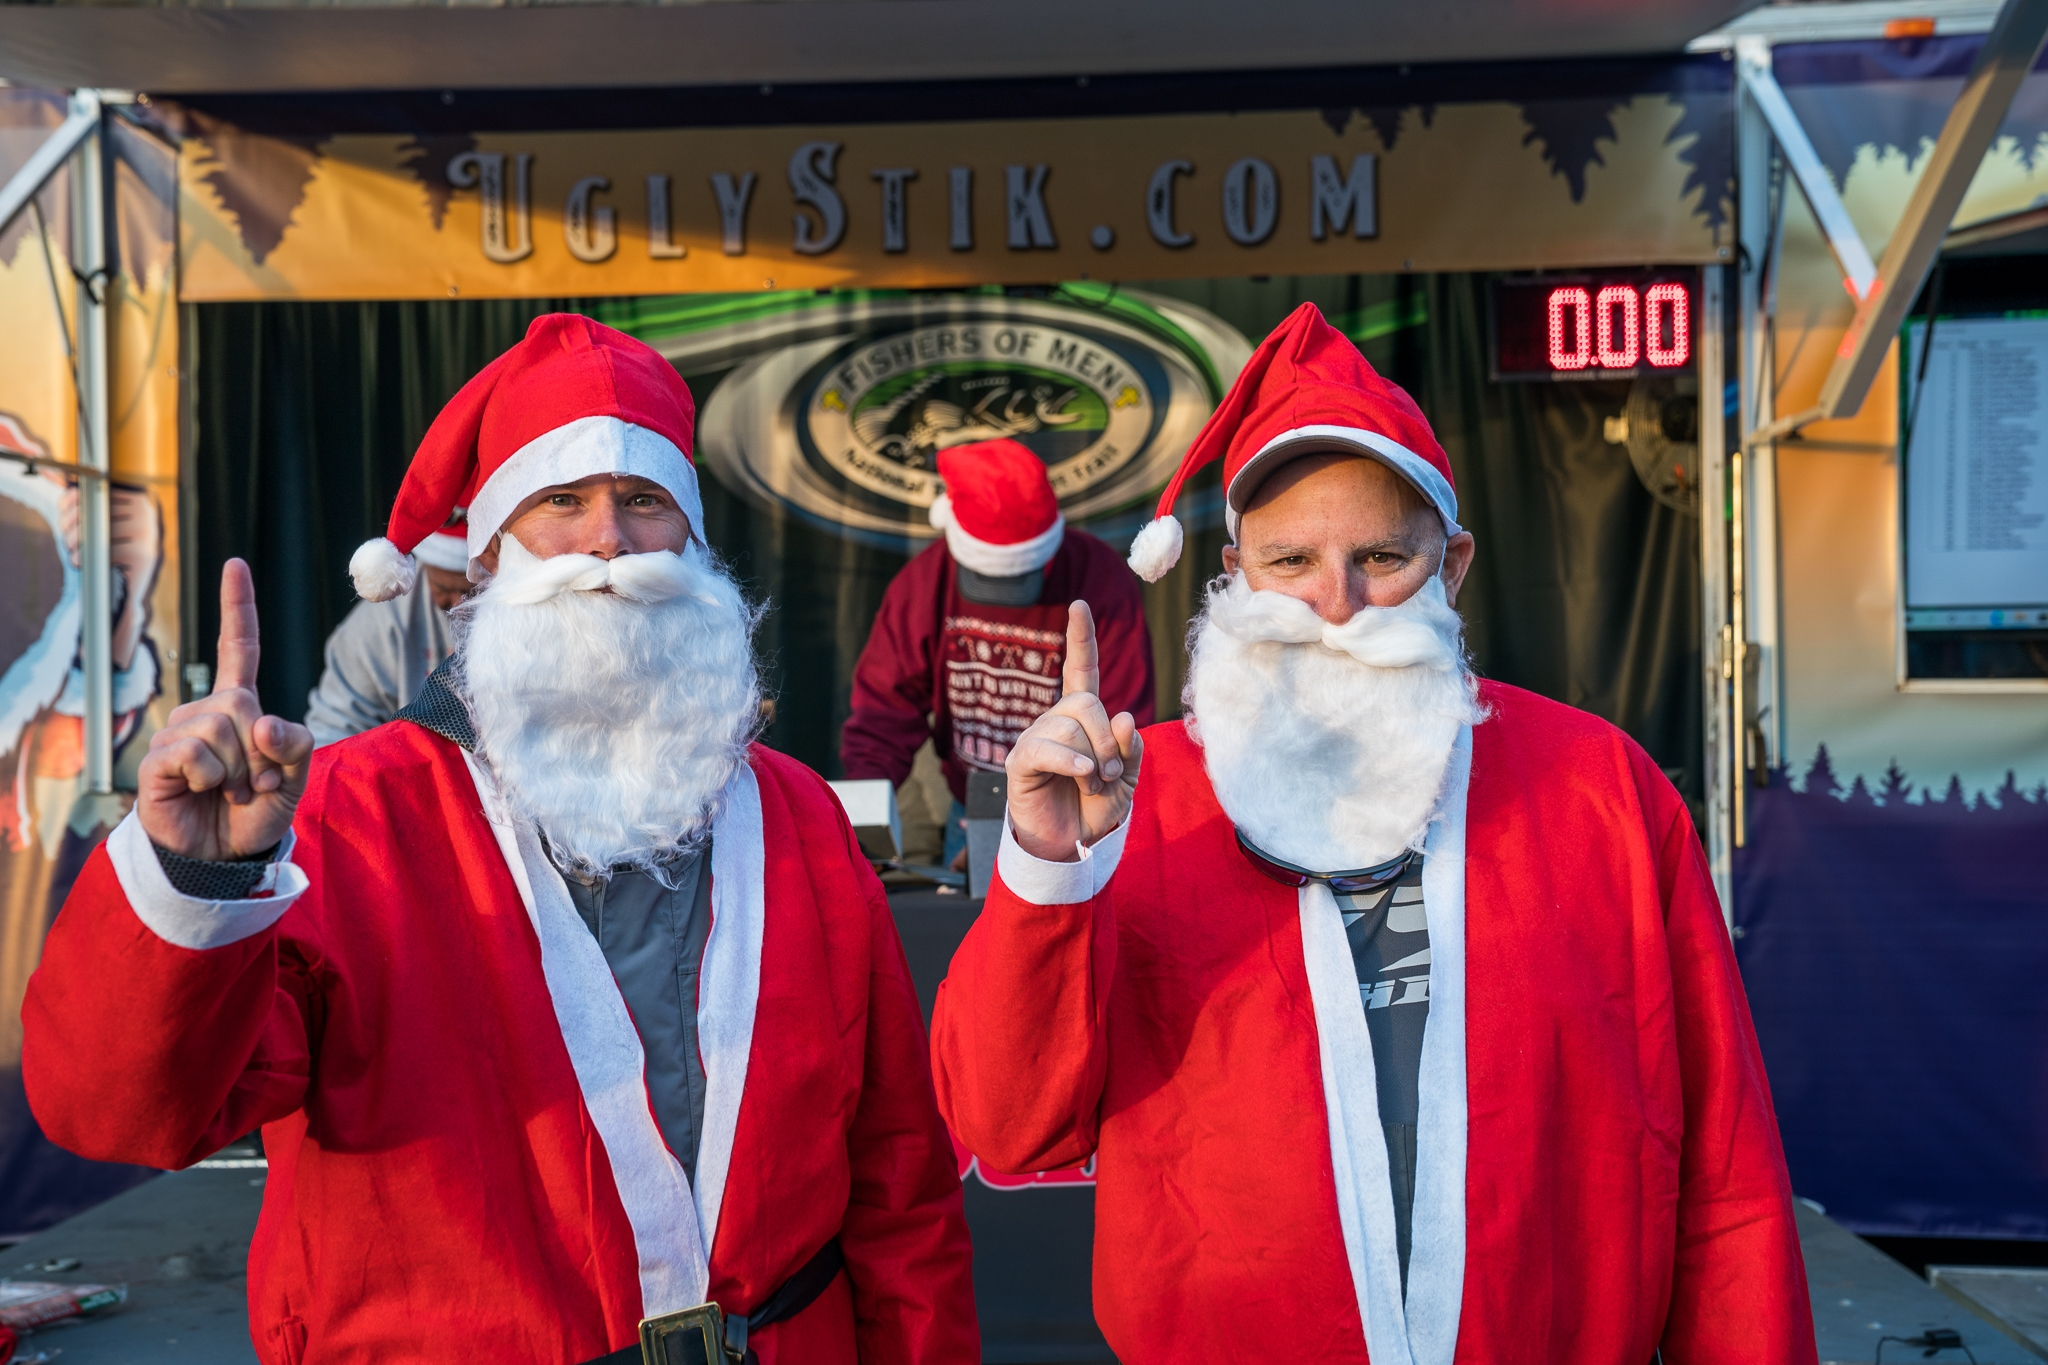 Anglers in Santa Suits